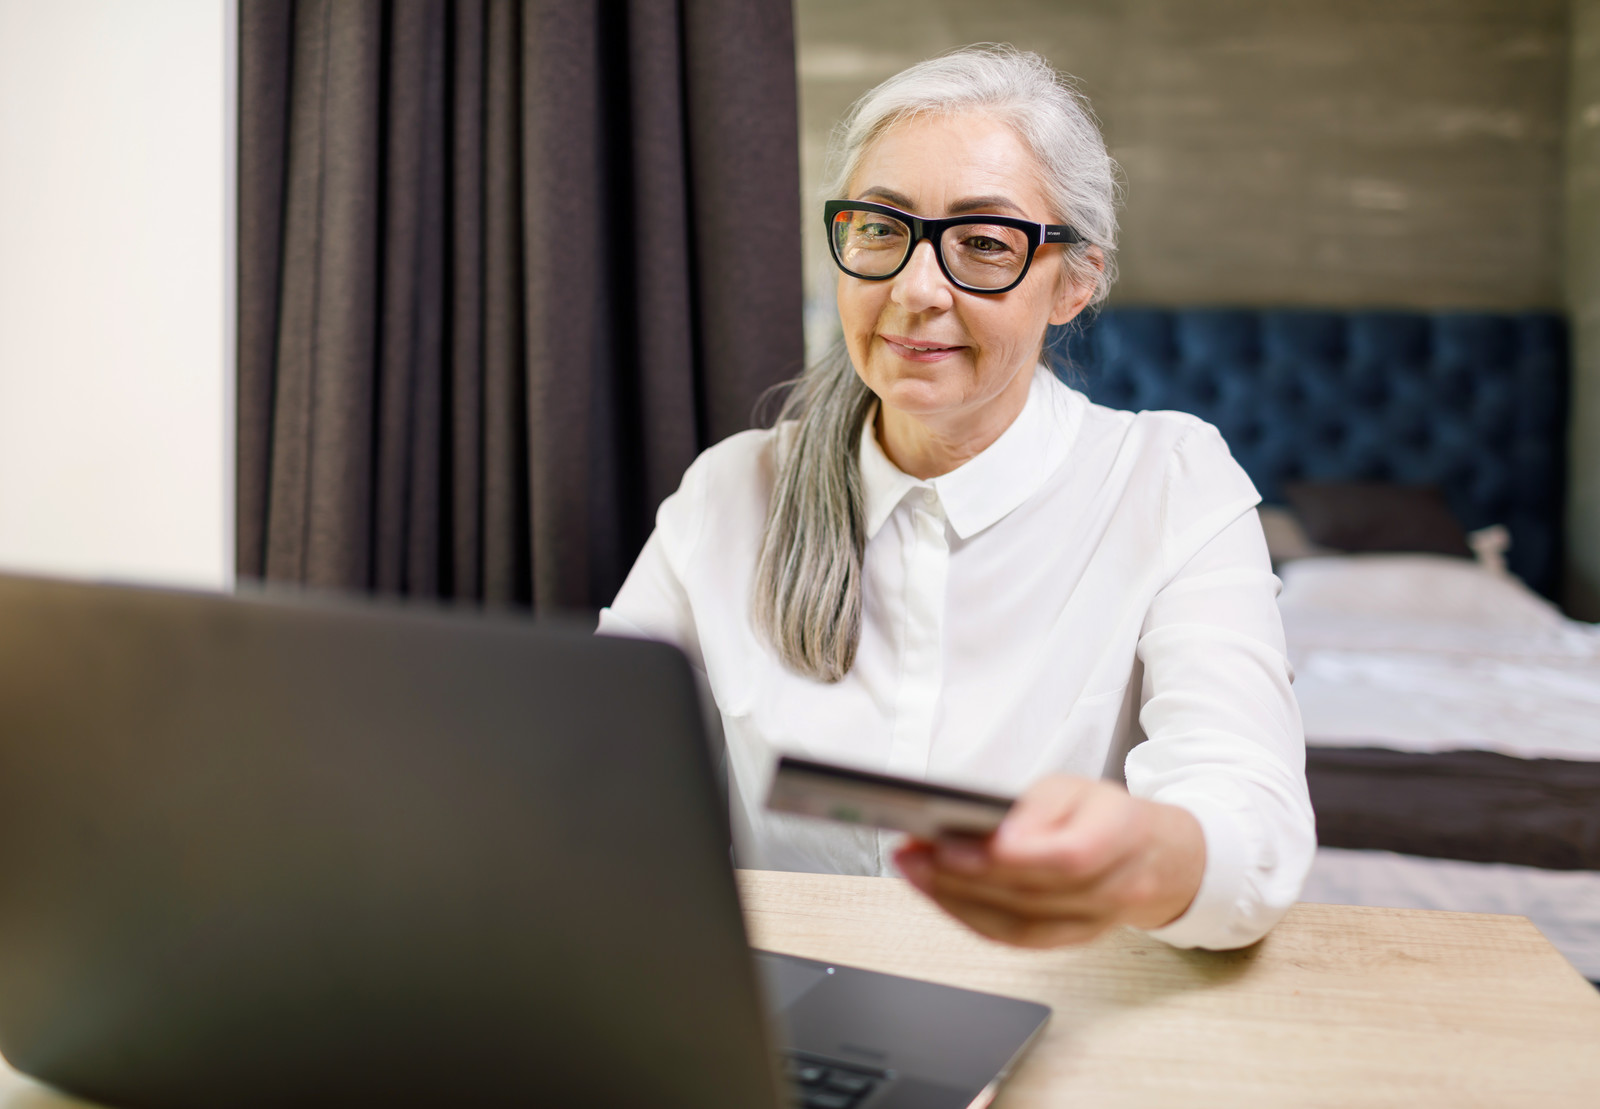 Smiling Senior woman with a credit card in her hand purchasing something on her computer